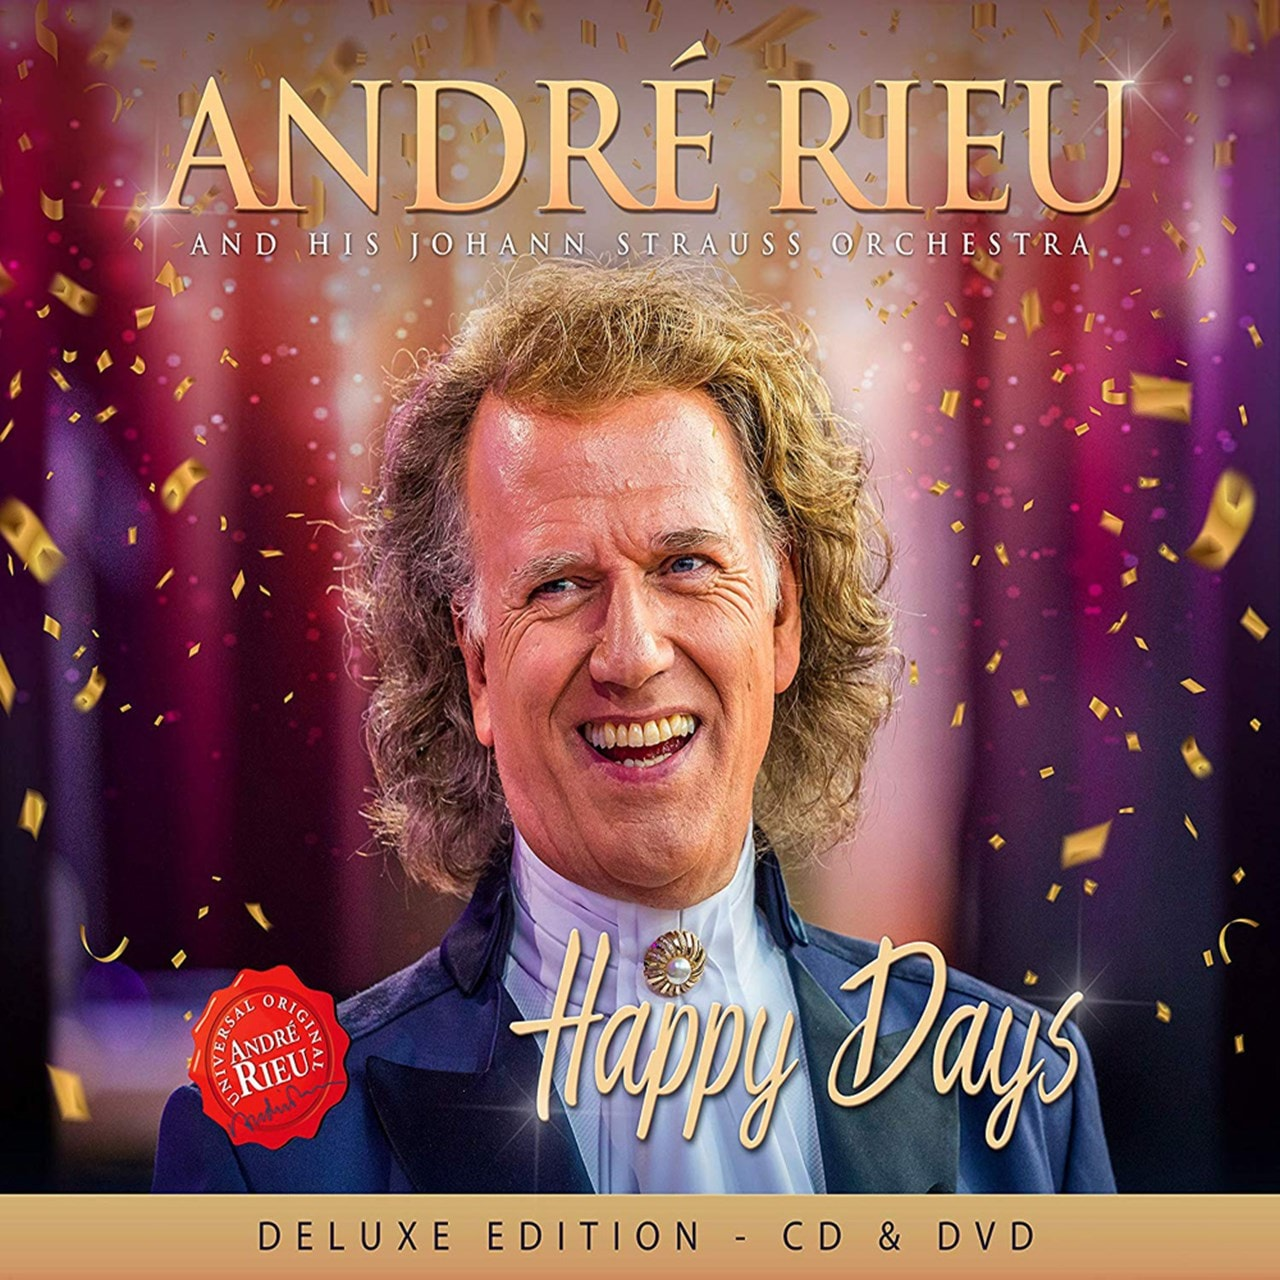 Andre Rieu and His Johann Strauss Orchestra: Happy Days - 1